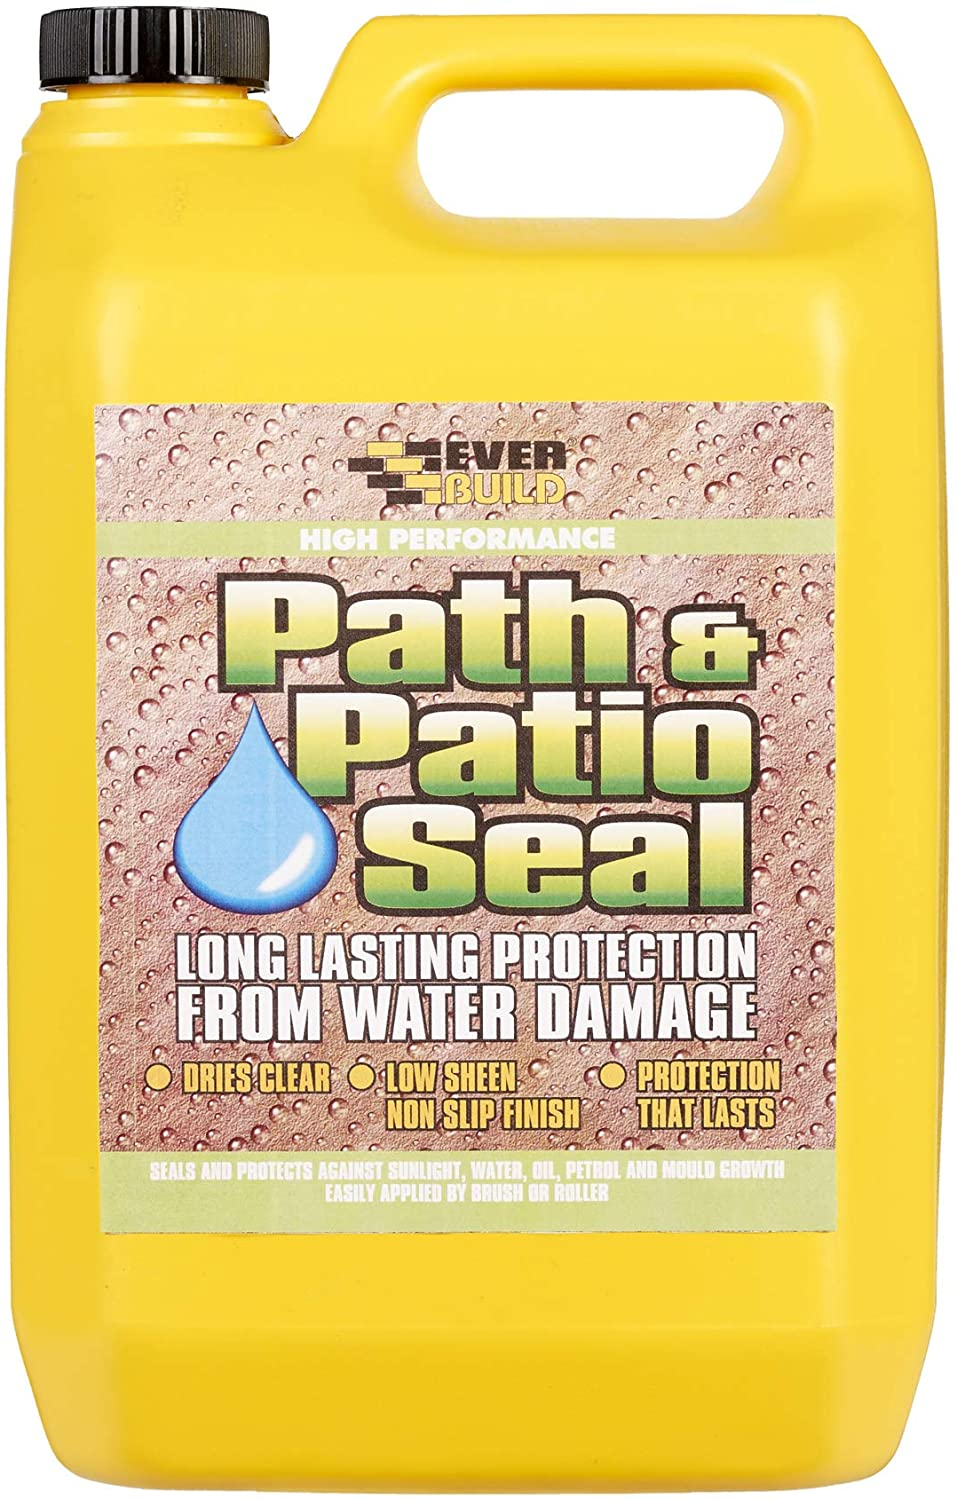 Everbuild 405 Path & Patio Seal Path and Patio, Clear, 5 Litre